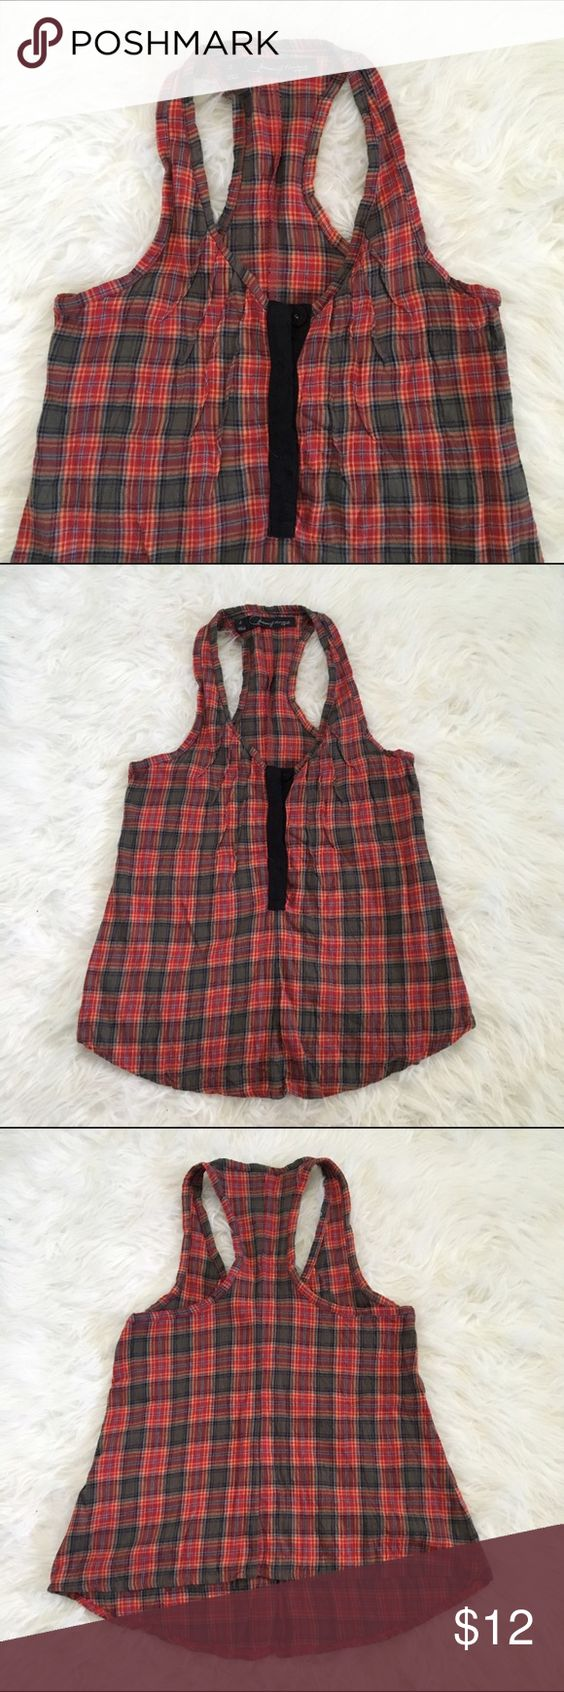 (shopbop PJK) plaid flannel racerback tank A unique flannel racerback tank perfect for layering in fall and winter. A scooped hemline in the front and straight across the back. Plaid colors are red, olive green, light blue, navy, and mustard yellow. There are 4 buttons / snaps down the front in navy. Brand is Patterson J. Kincaid Originals (PJK) from Shopbop. PJK Tops Blouses